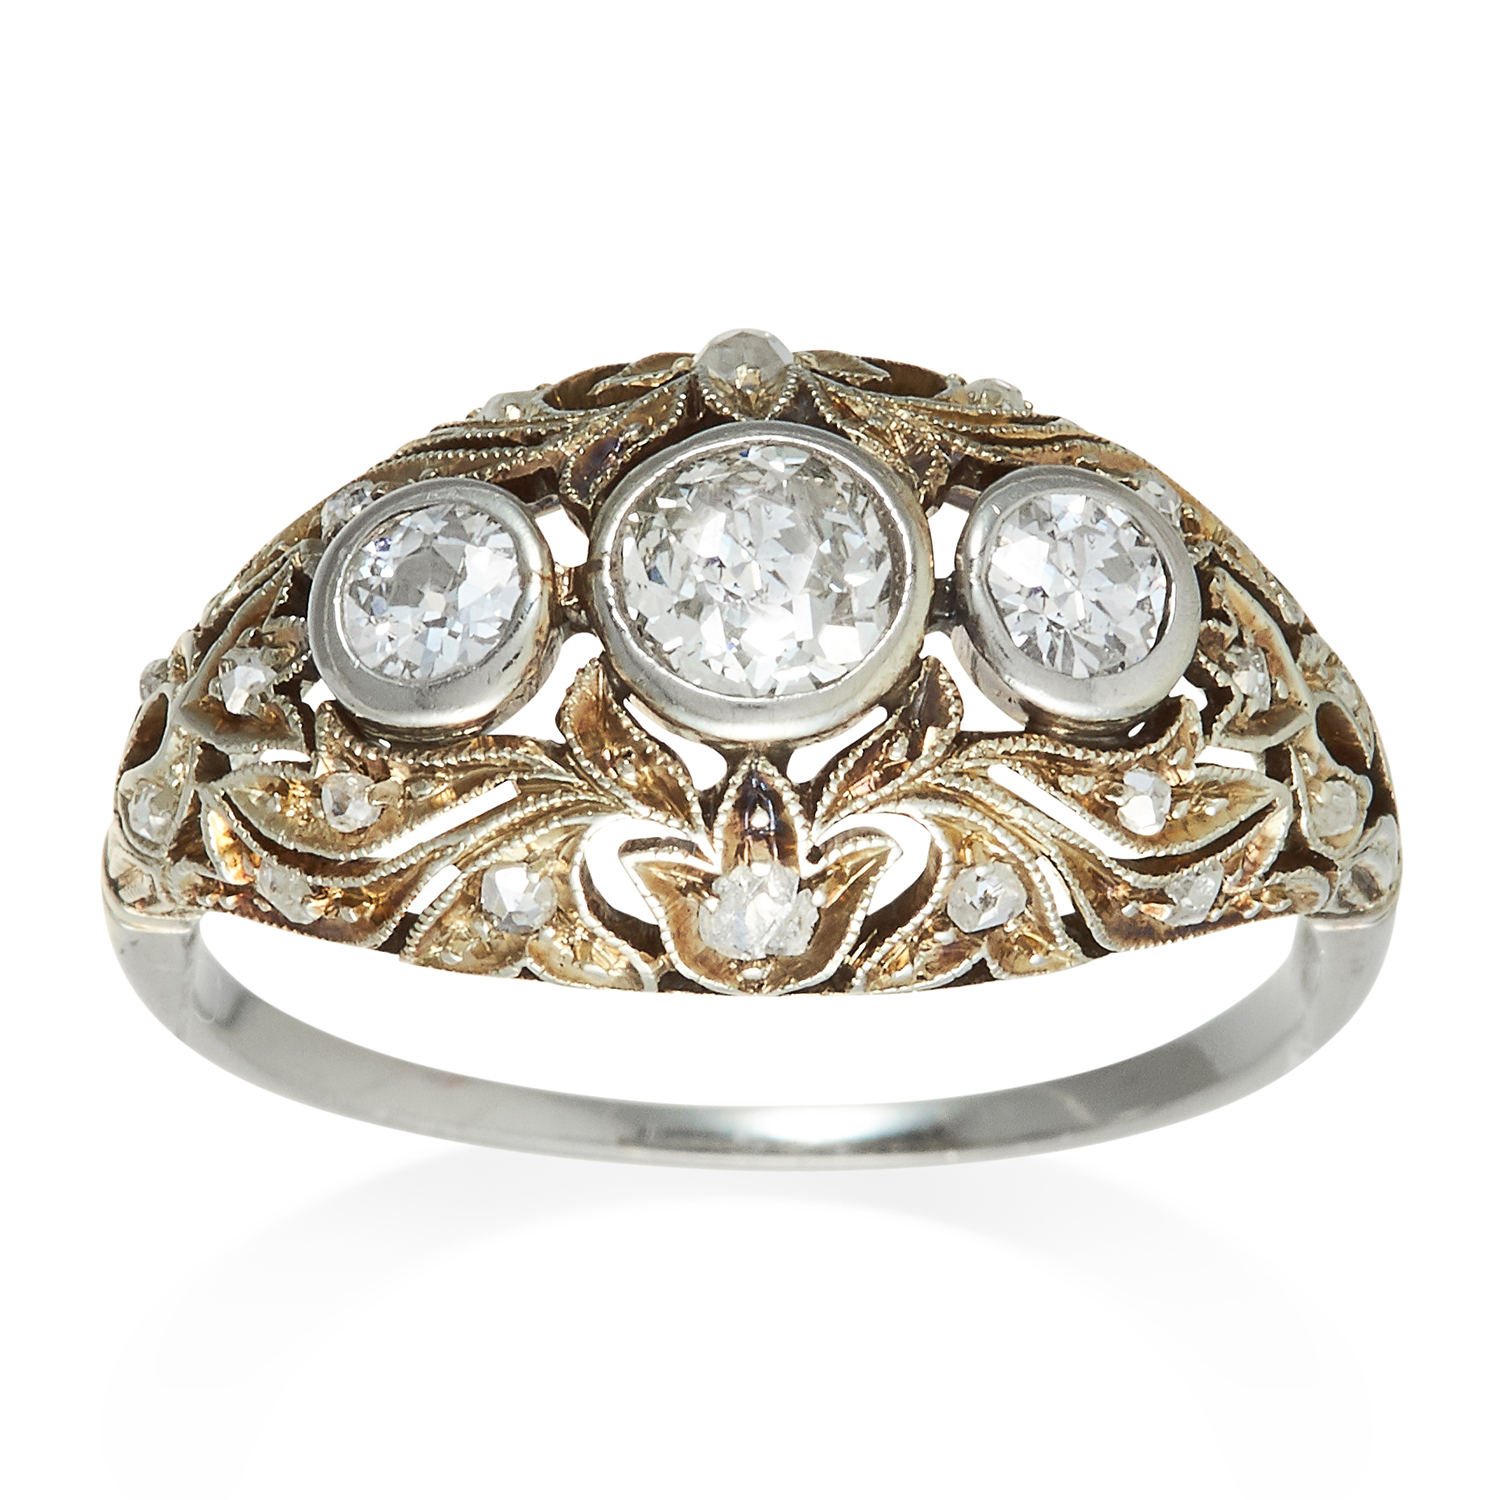 Los 352 - AN ART DECO DIAMOND RING in platinum or white gold, the trio of round cut diamonds, within scrolling